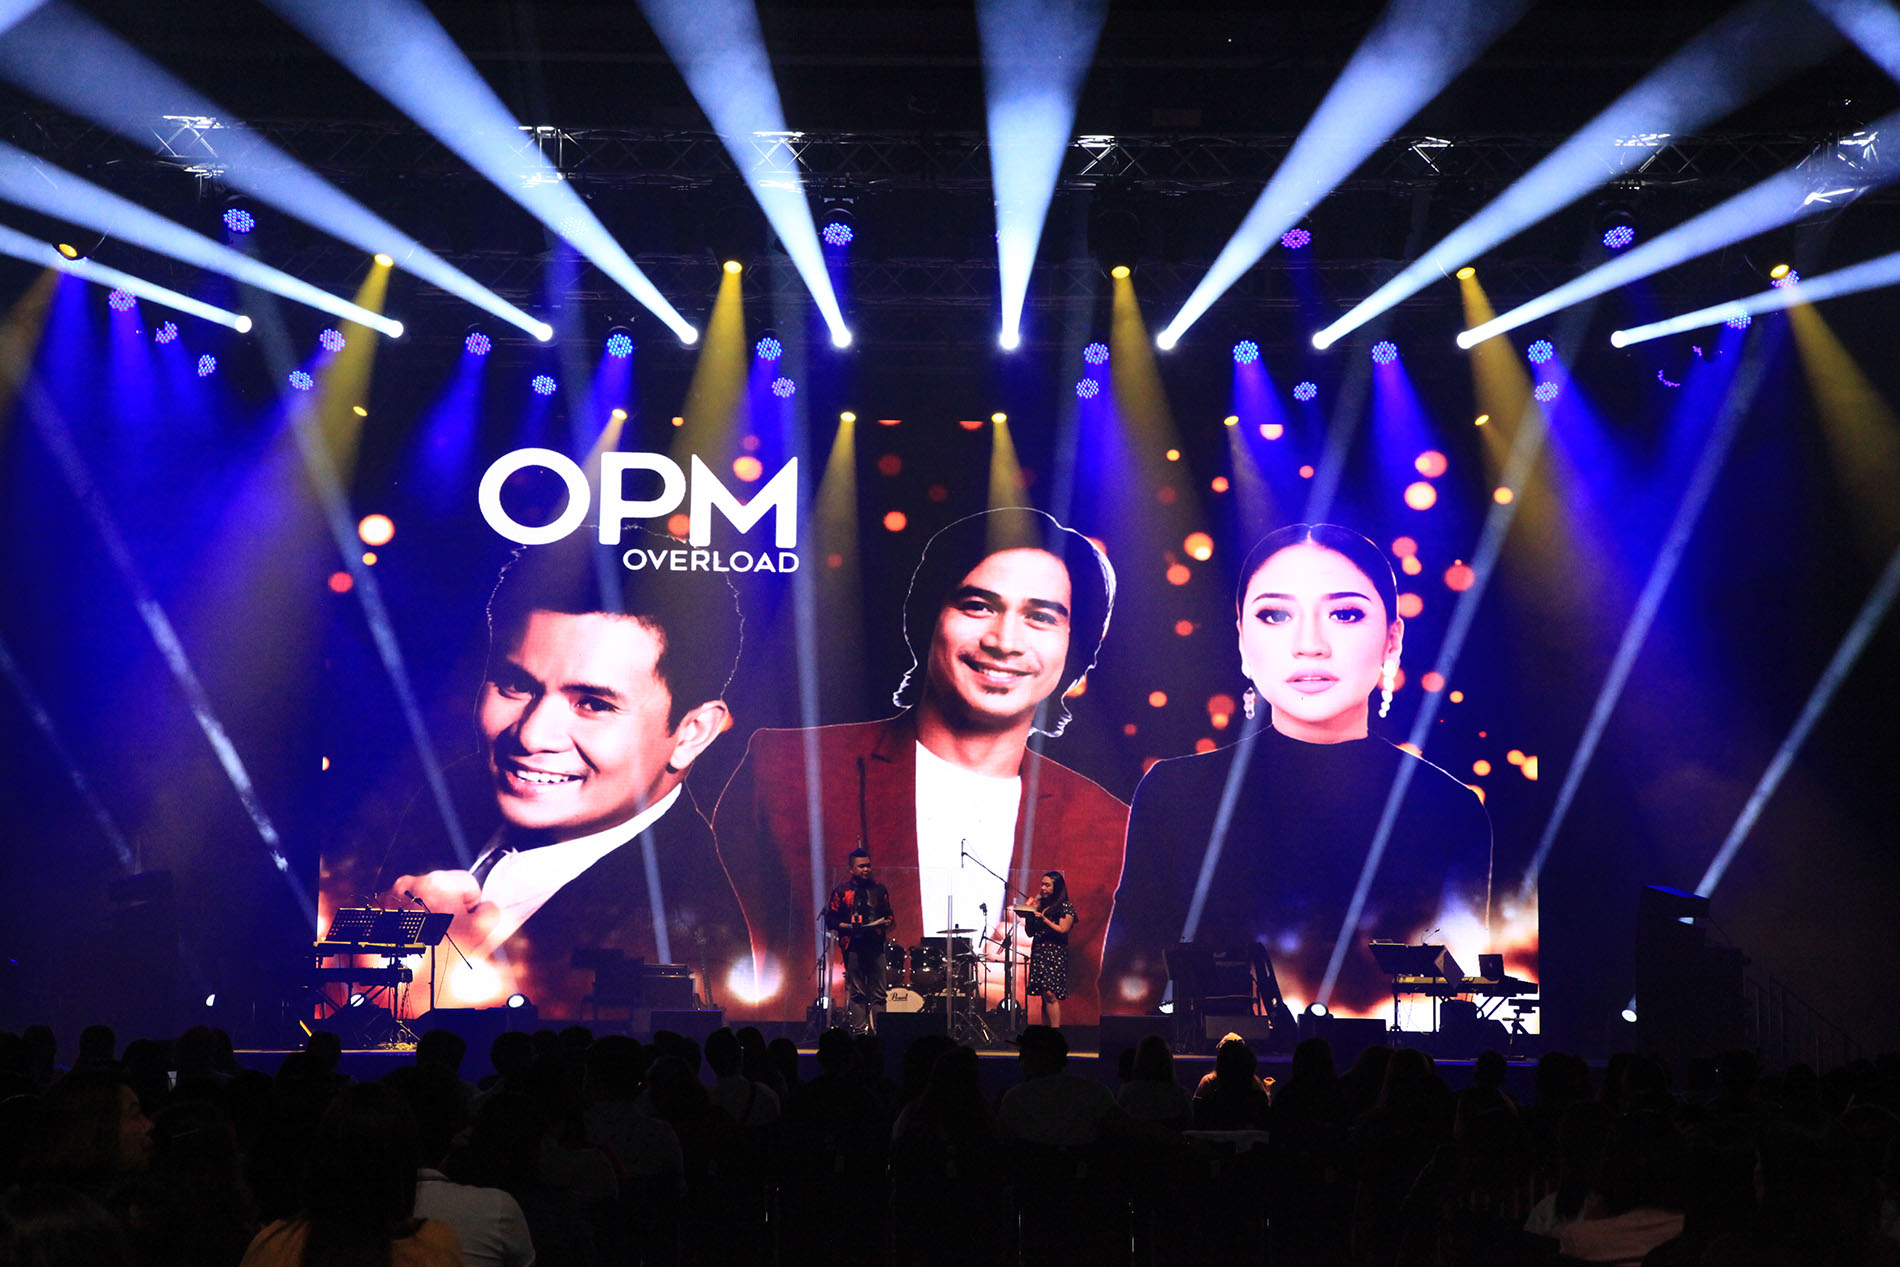 Event - OPM in Dubai